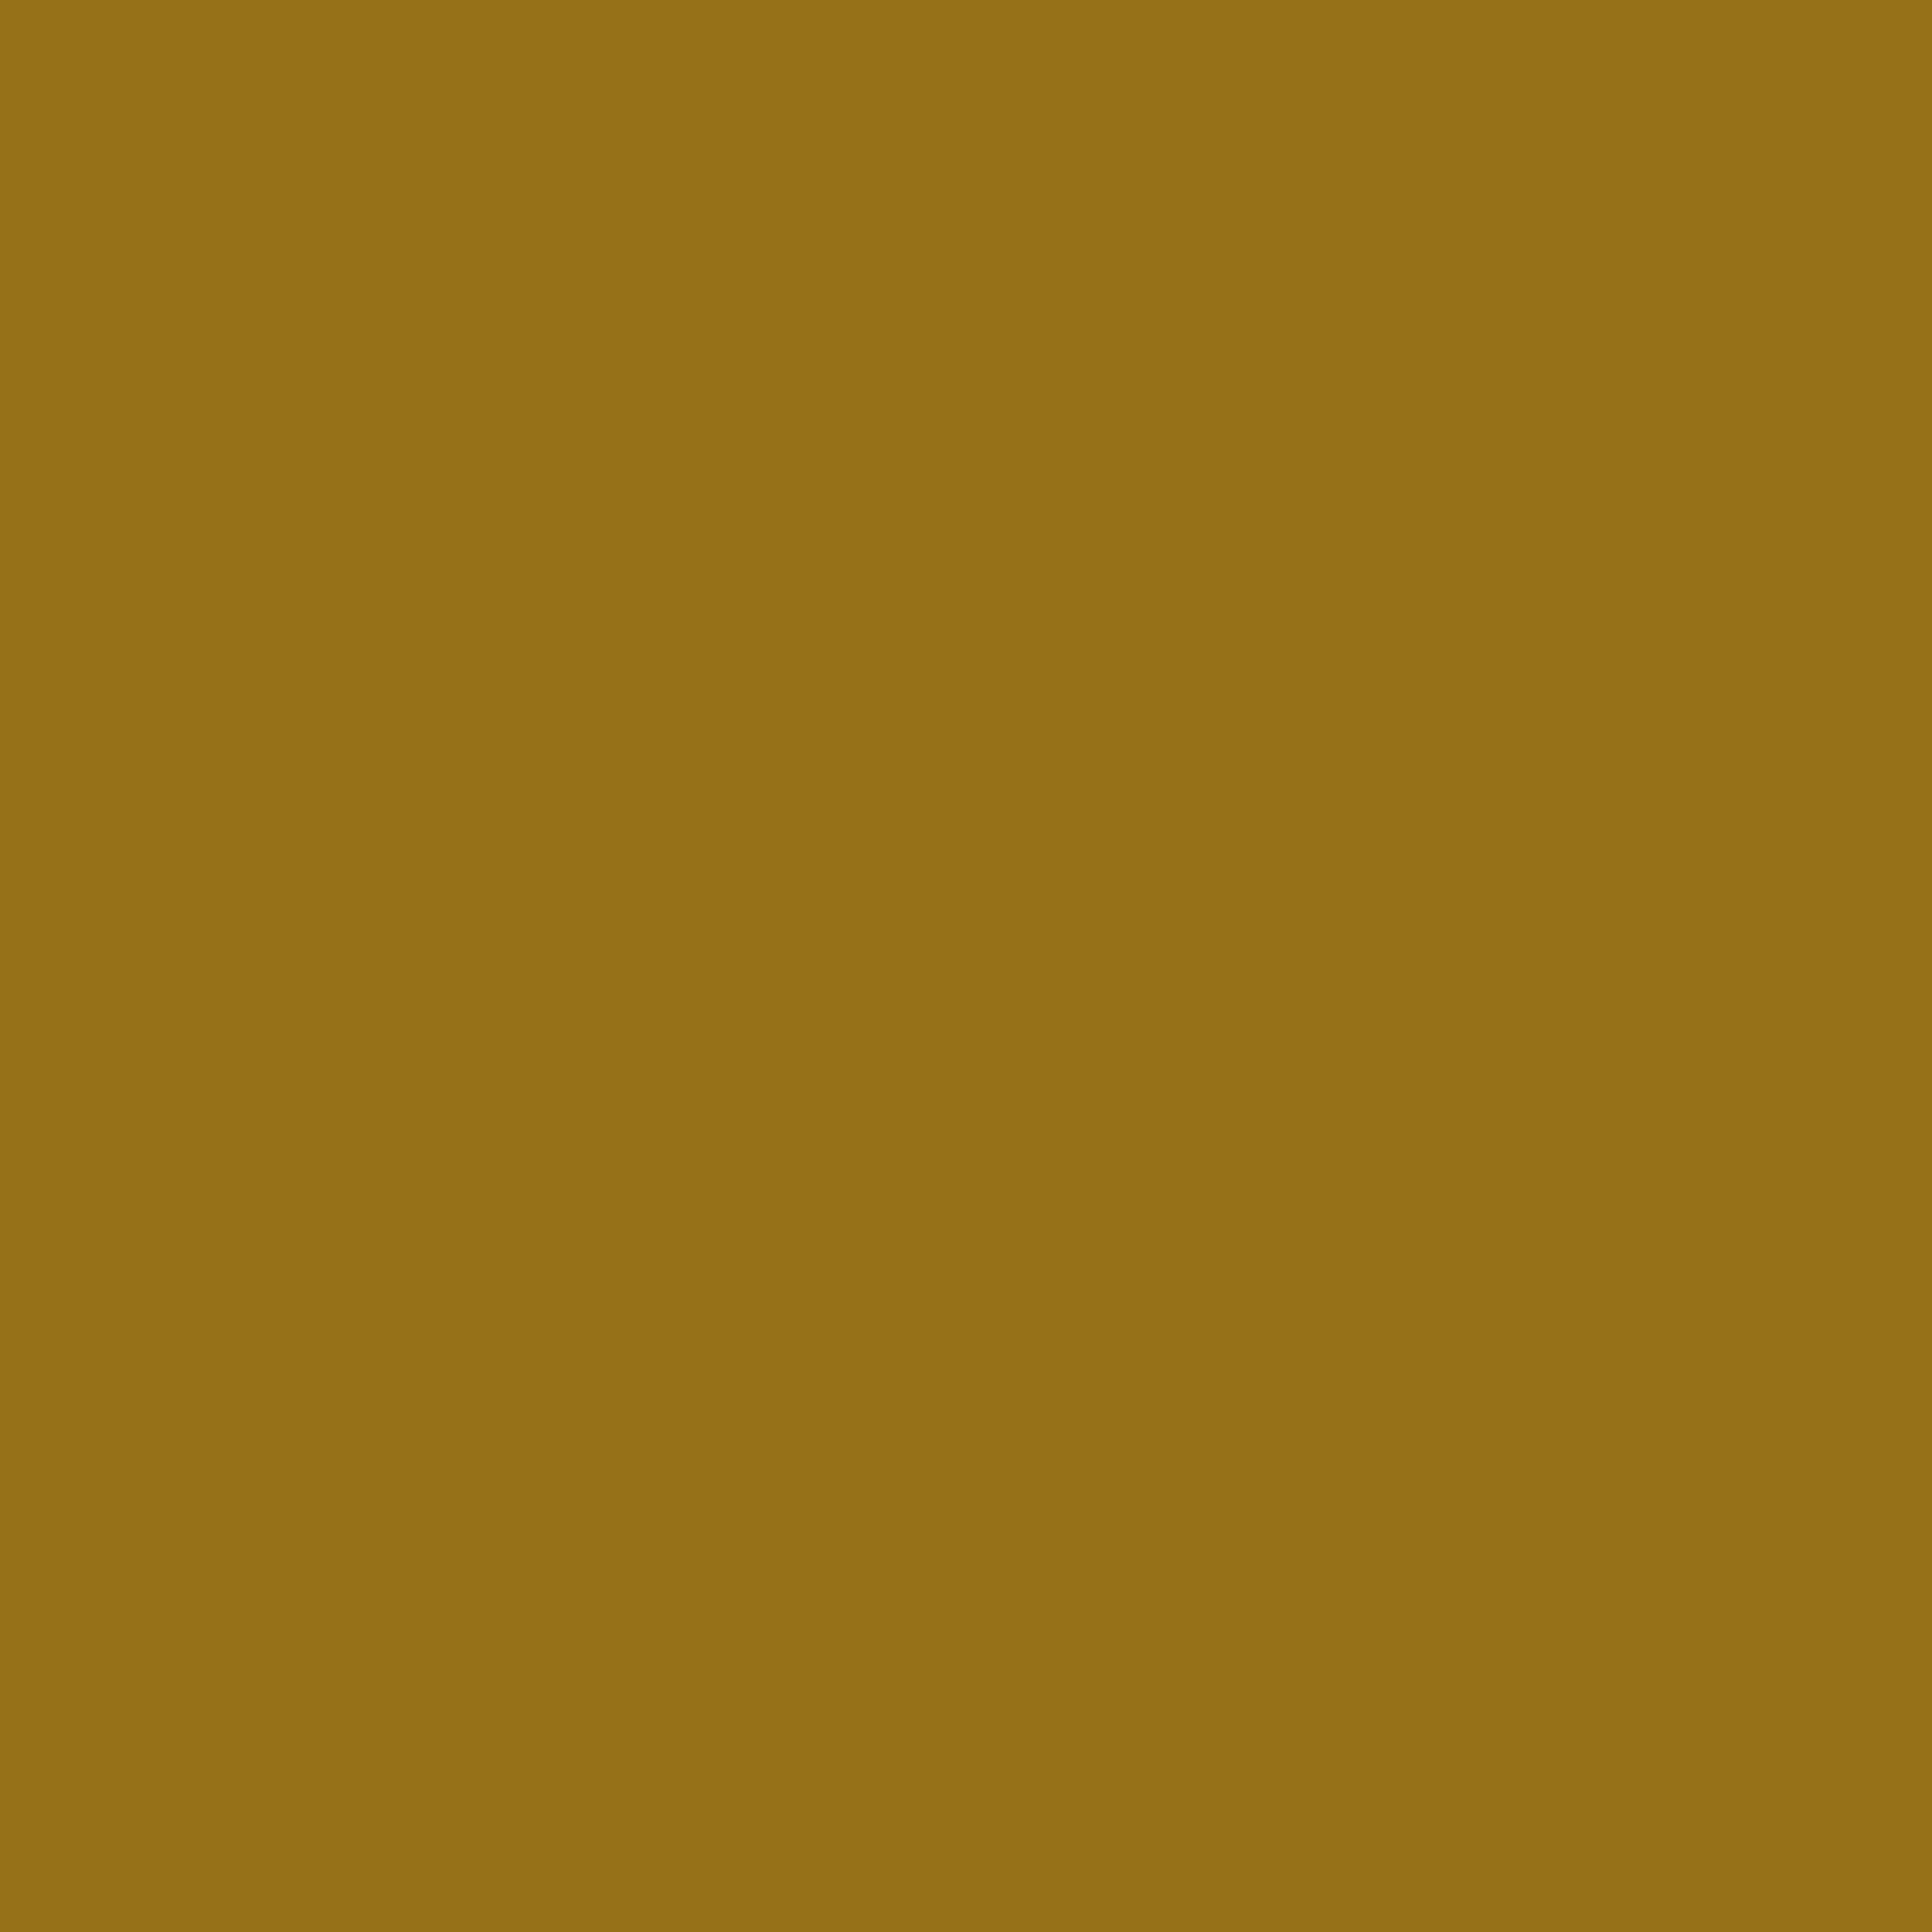 3600x3600 Sand Dune Solid Color Background